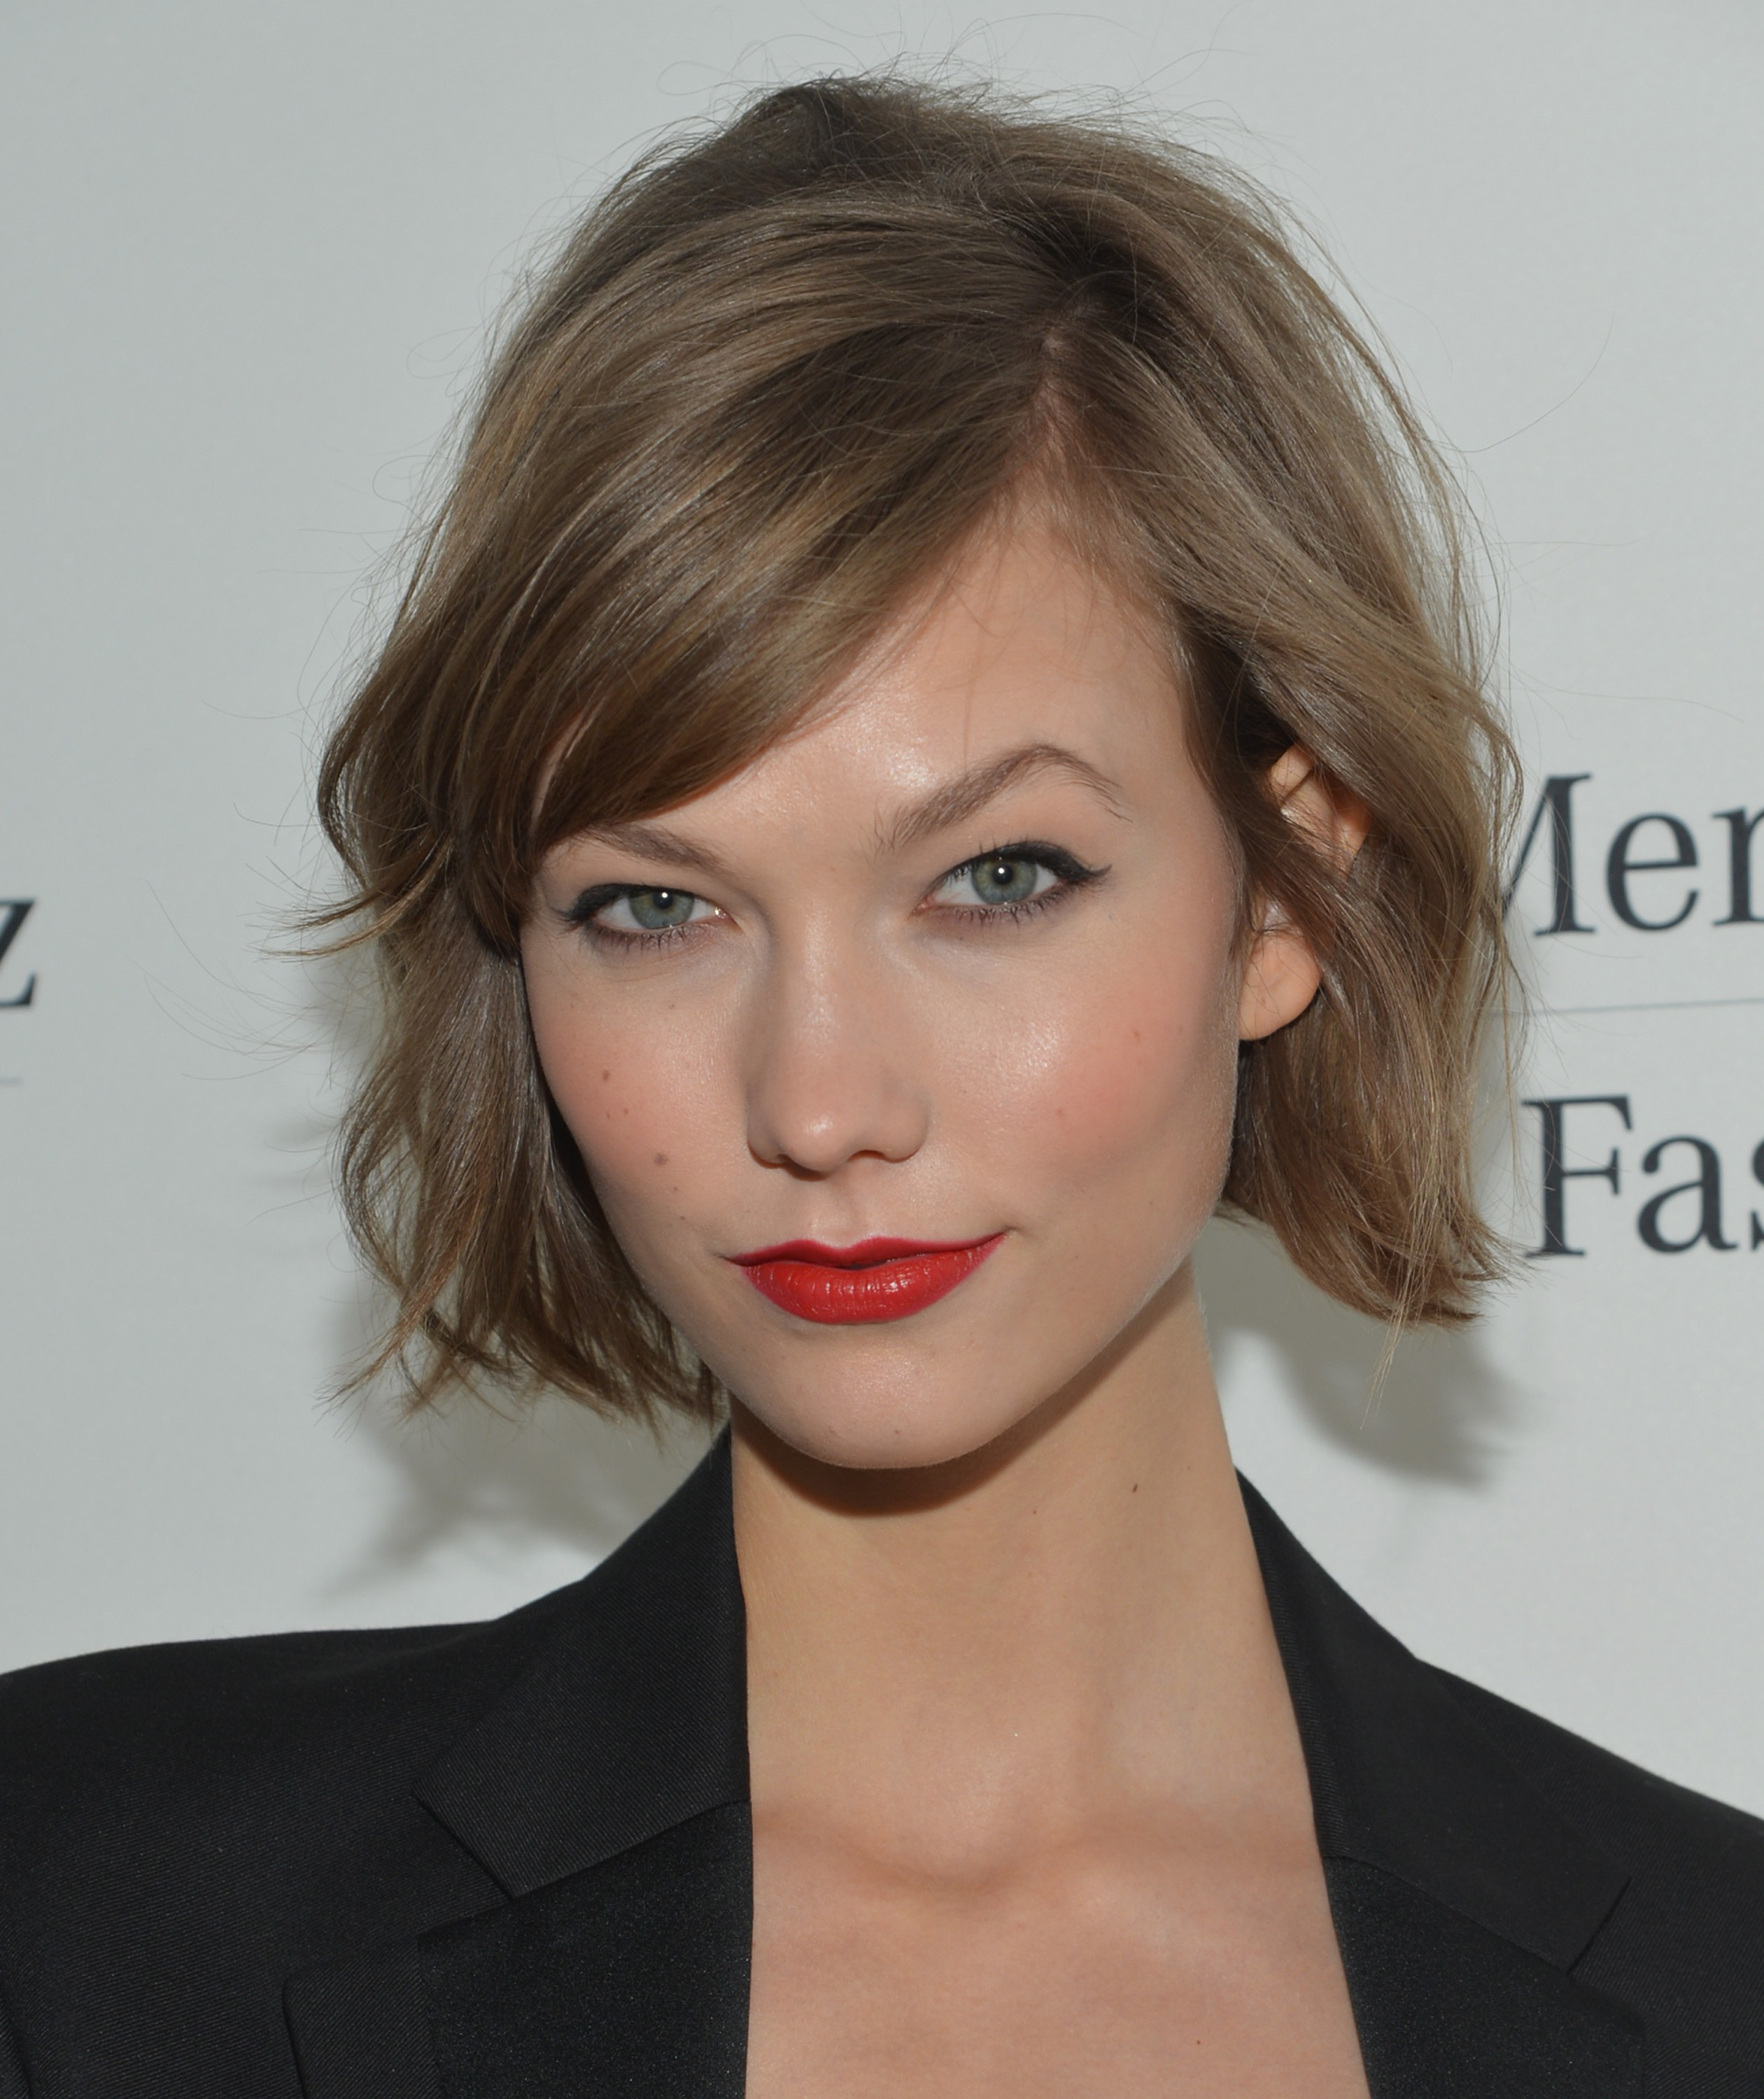 25 Prom Hairstyles For Short Hair Stylecaster